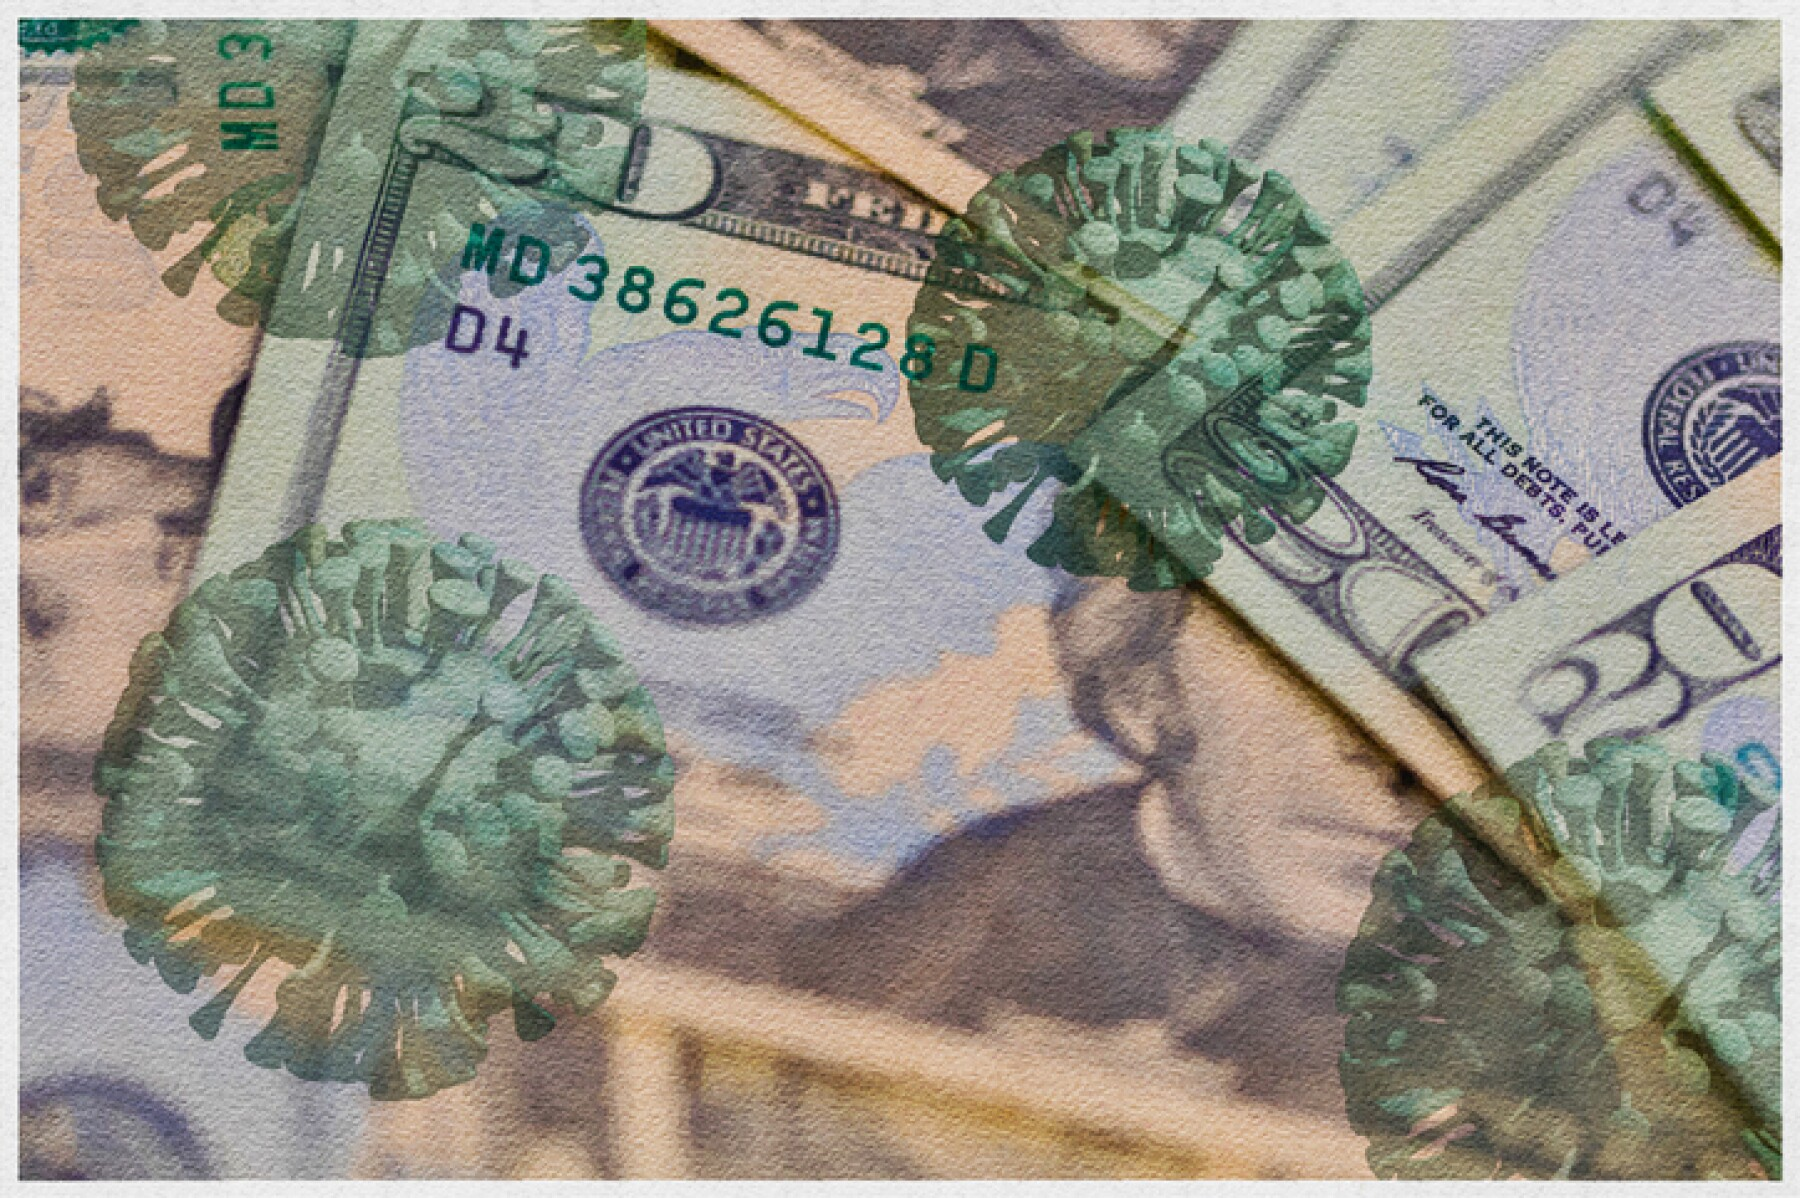 Watercolor filtered American twenty dollar bills, on which 3D rendered COVID- 19 virus has been applied.